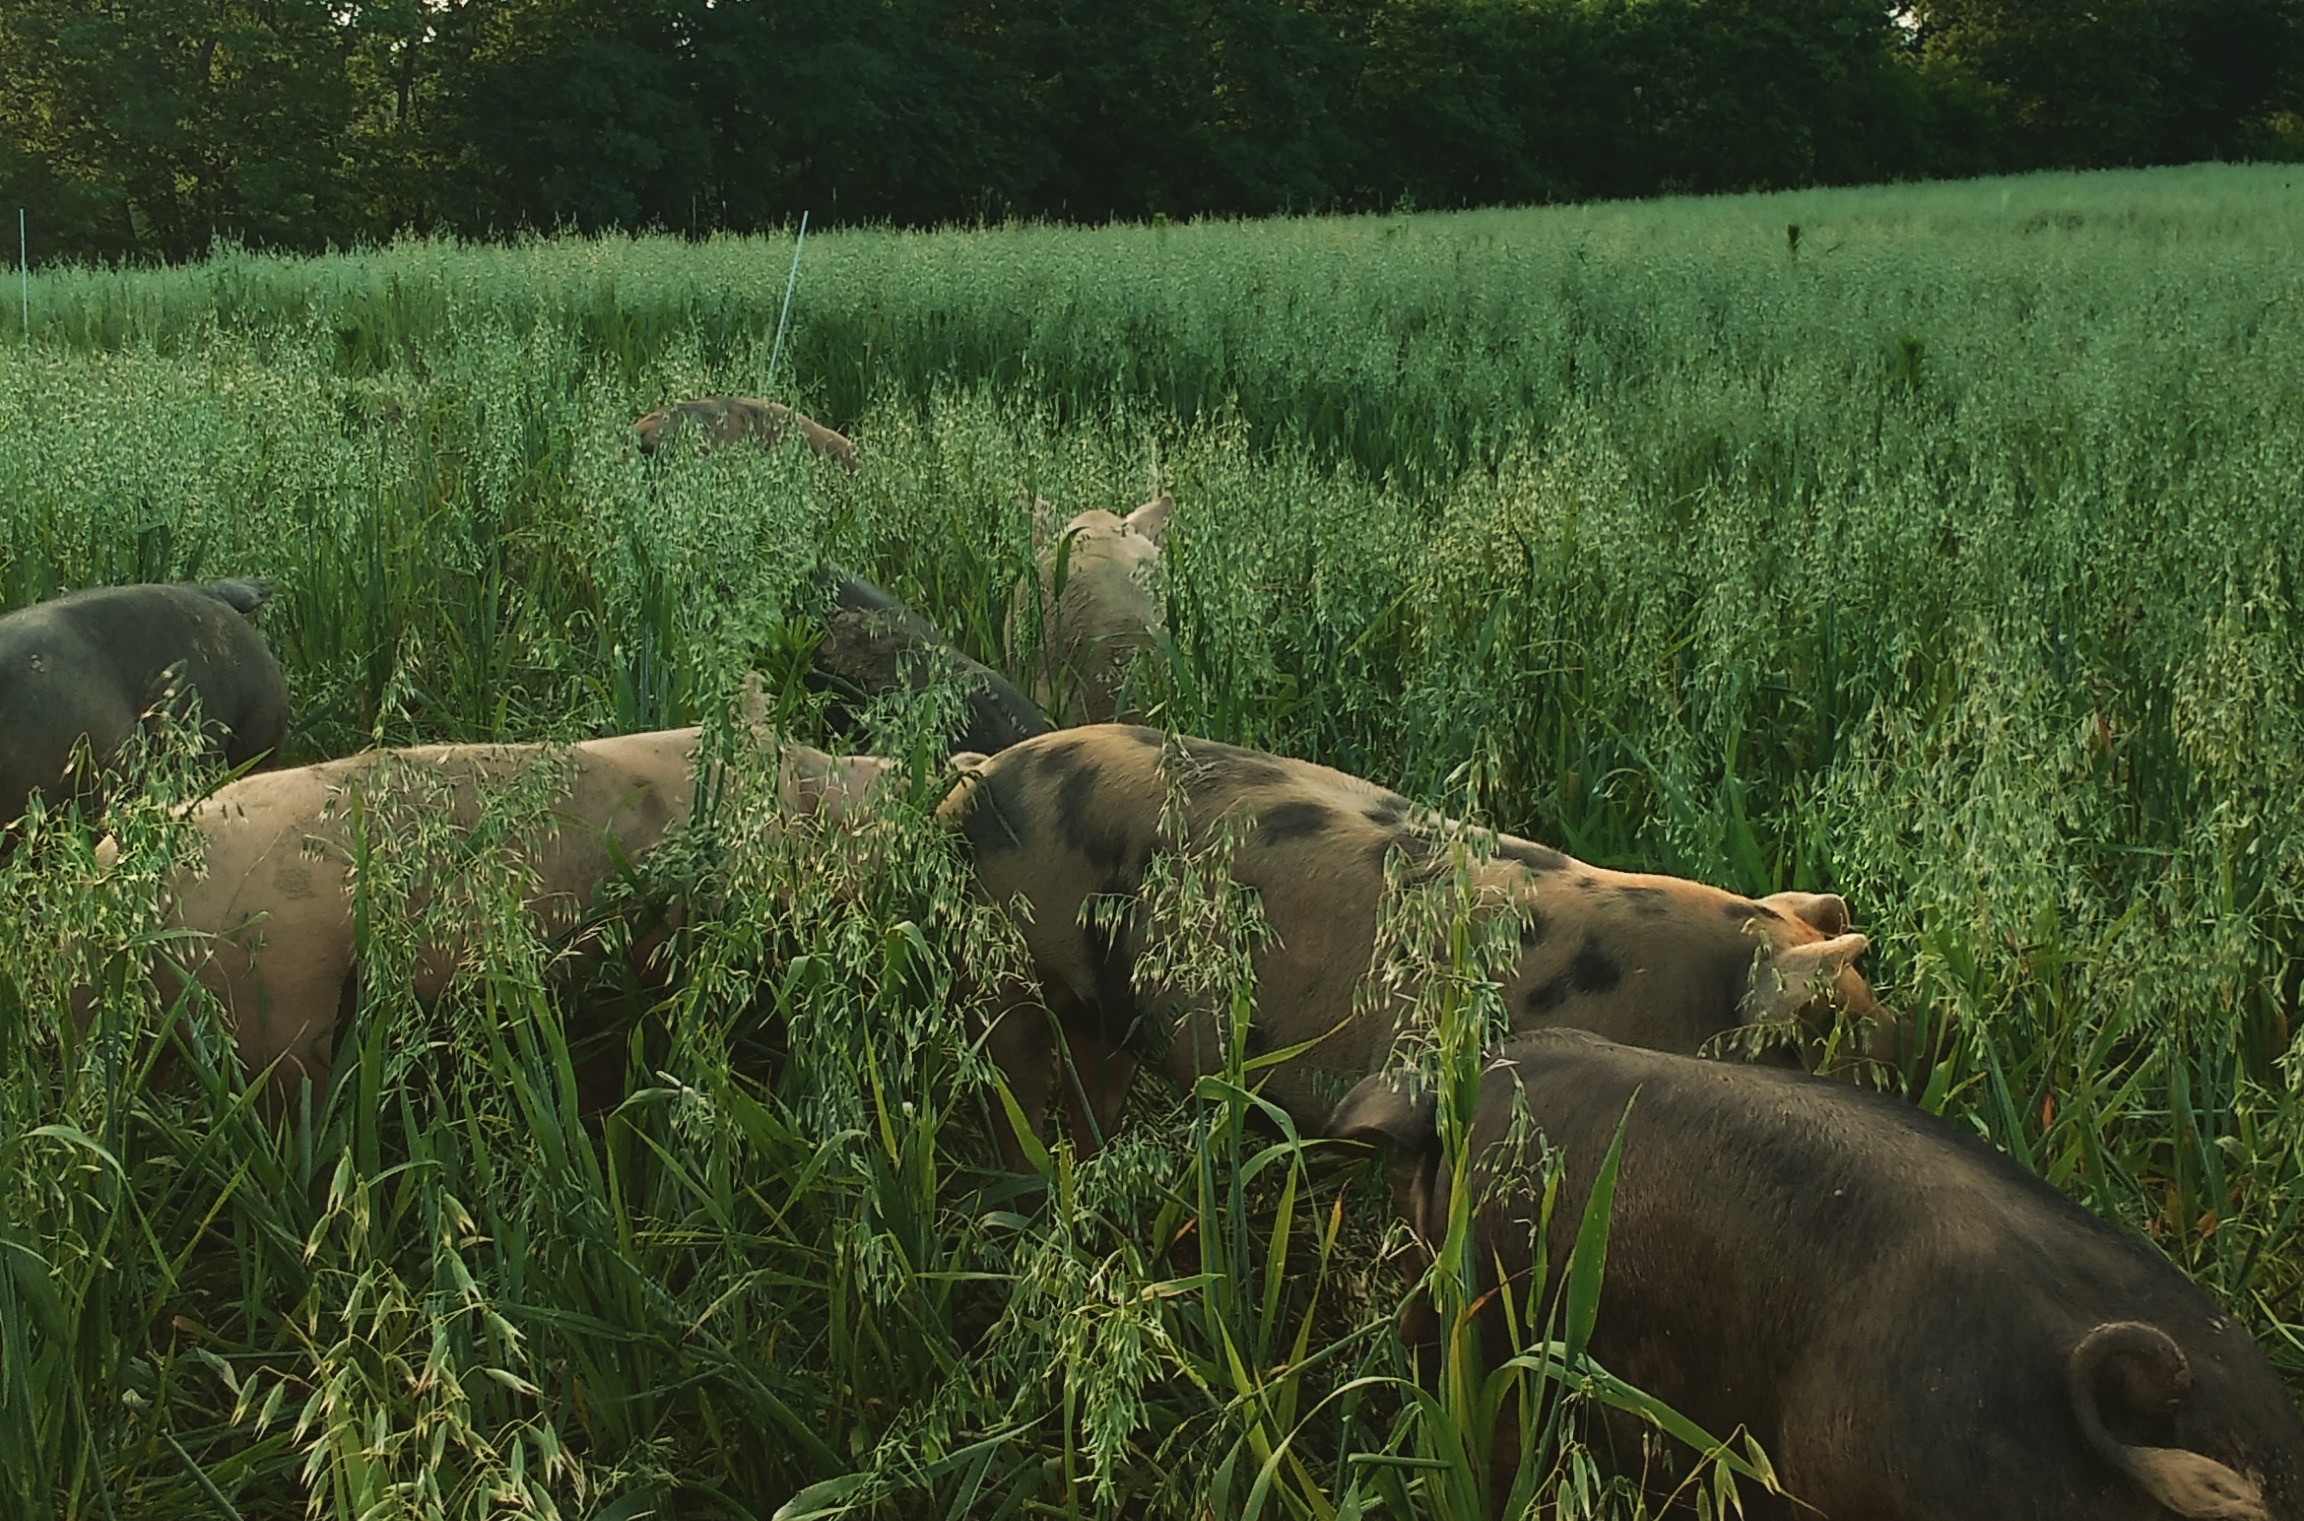 Because pigs root up their pasture in addition to grazing, we usually keep them on annual seeded grasses, rather than perennial pasture.